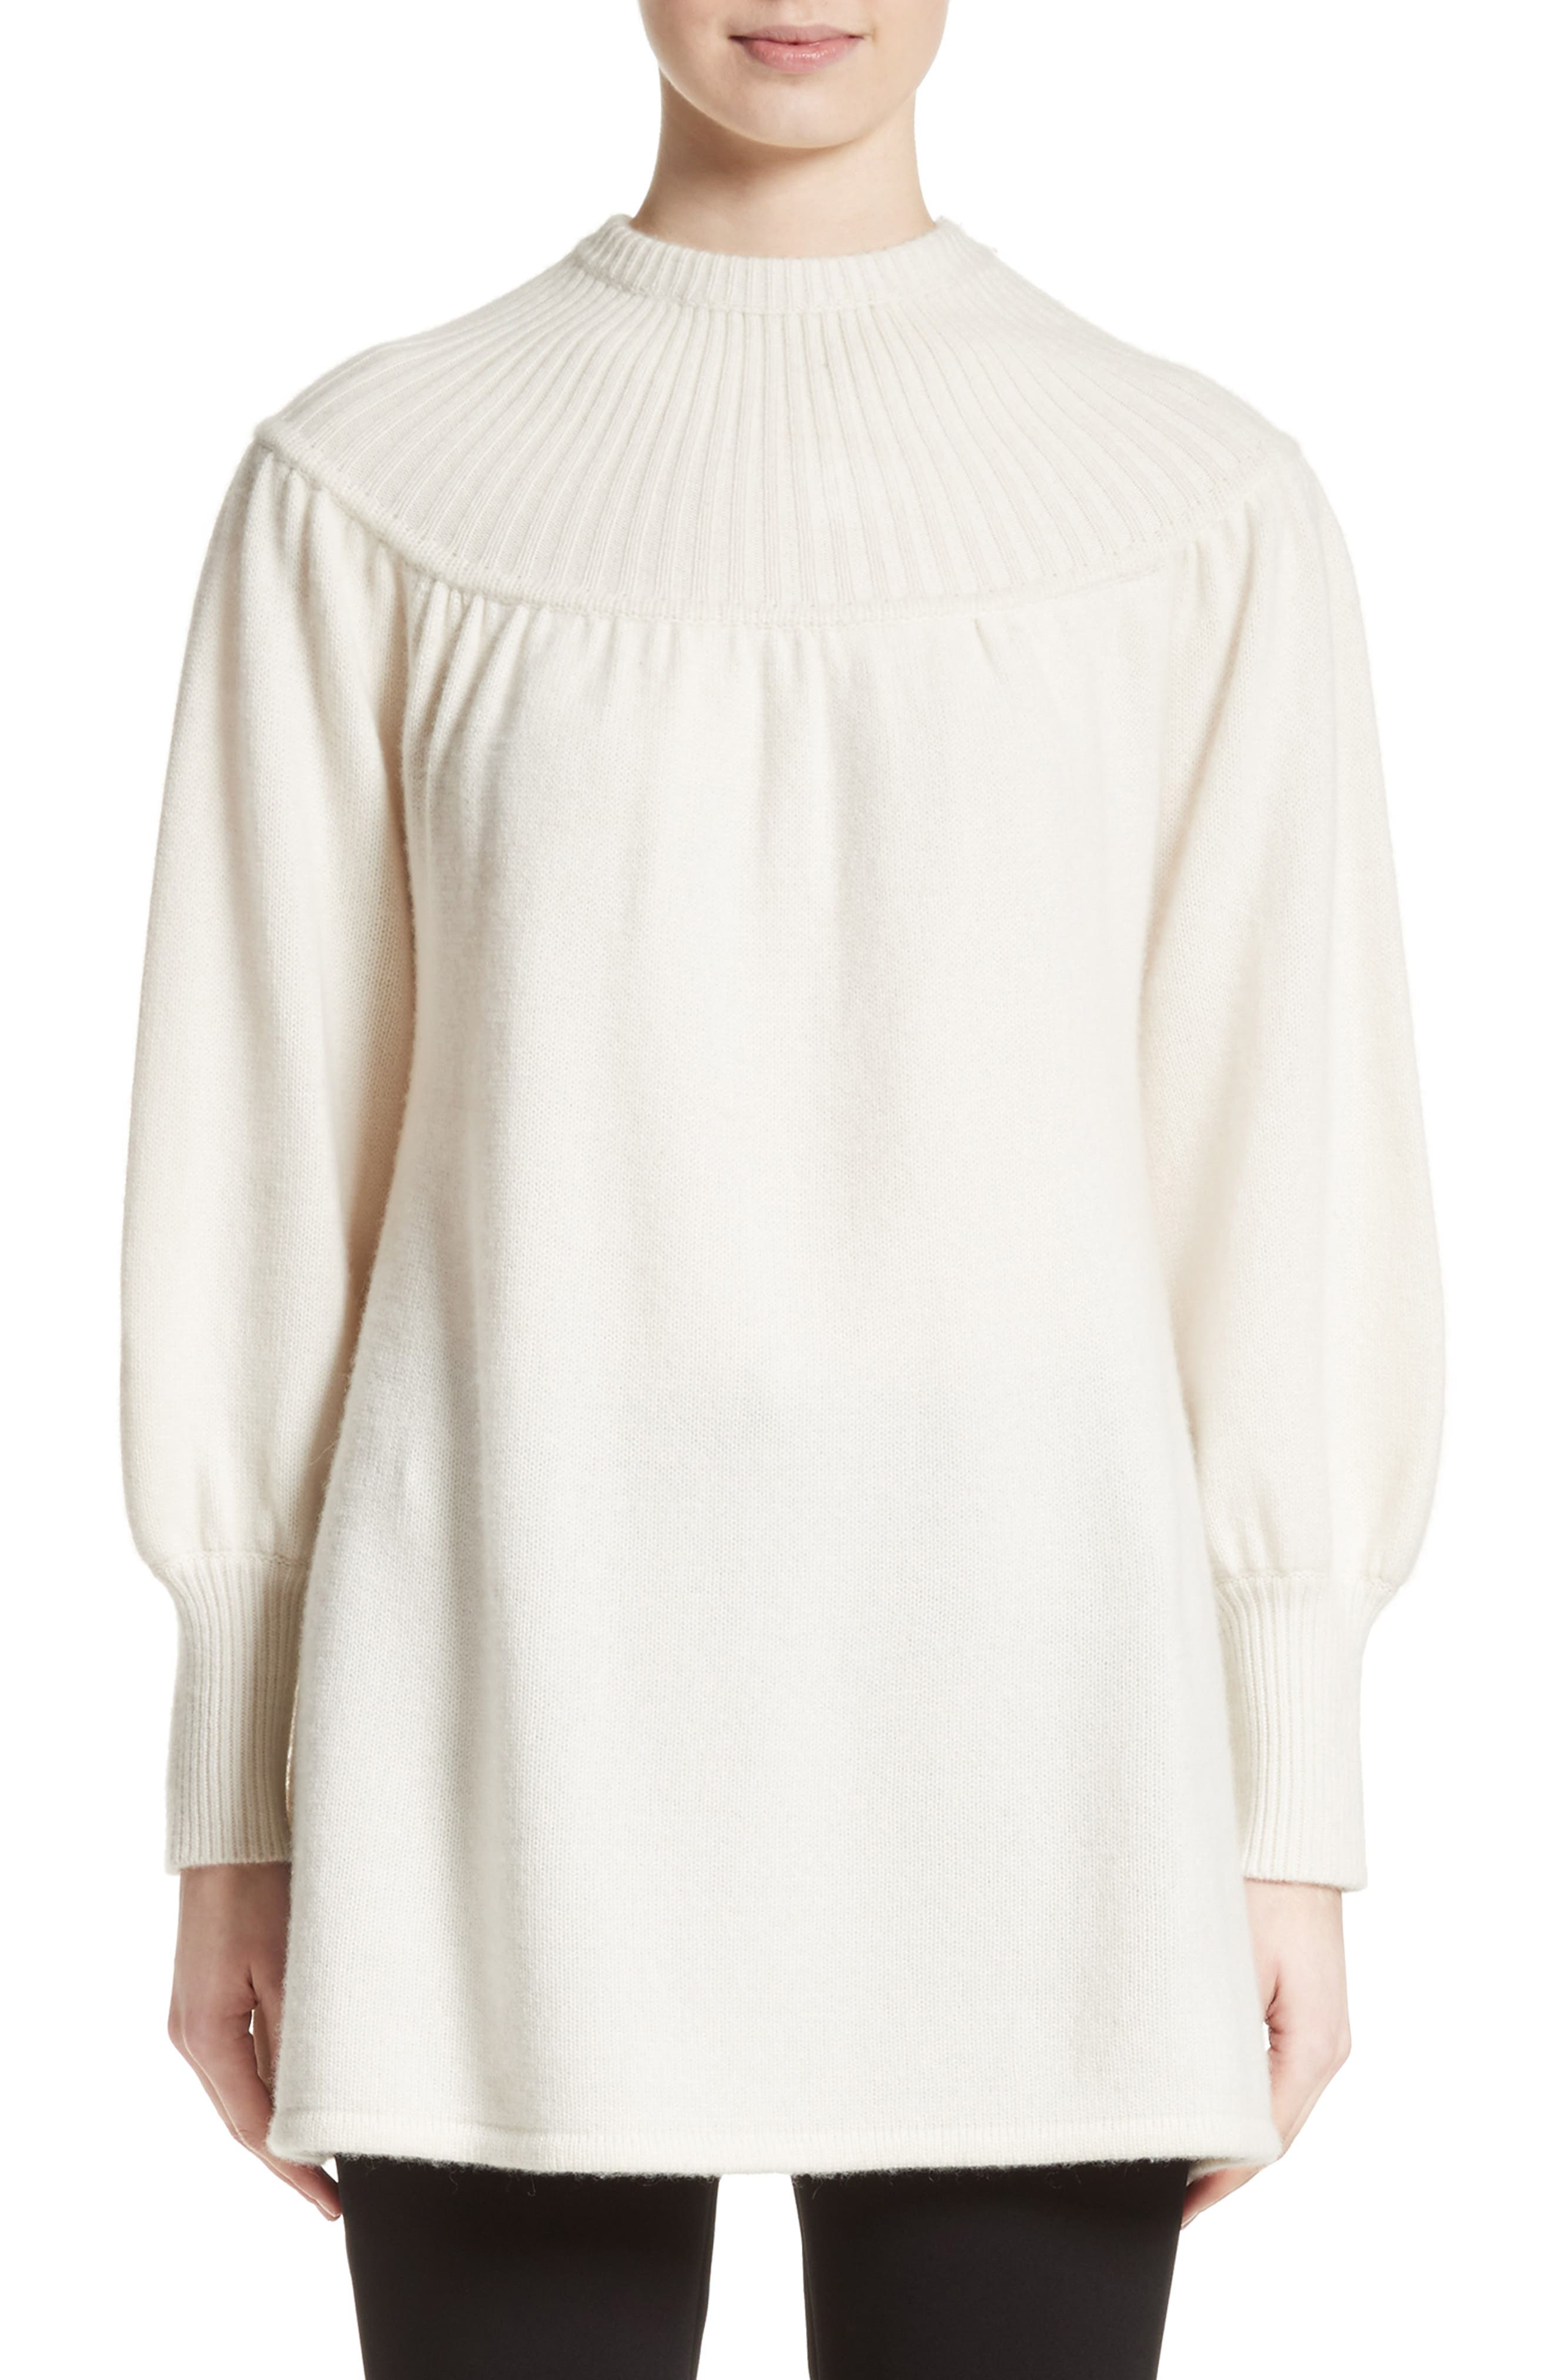 Rib Knit Cashmere Tunic Sweater,                         Main,                         color, Ivory